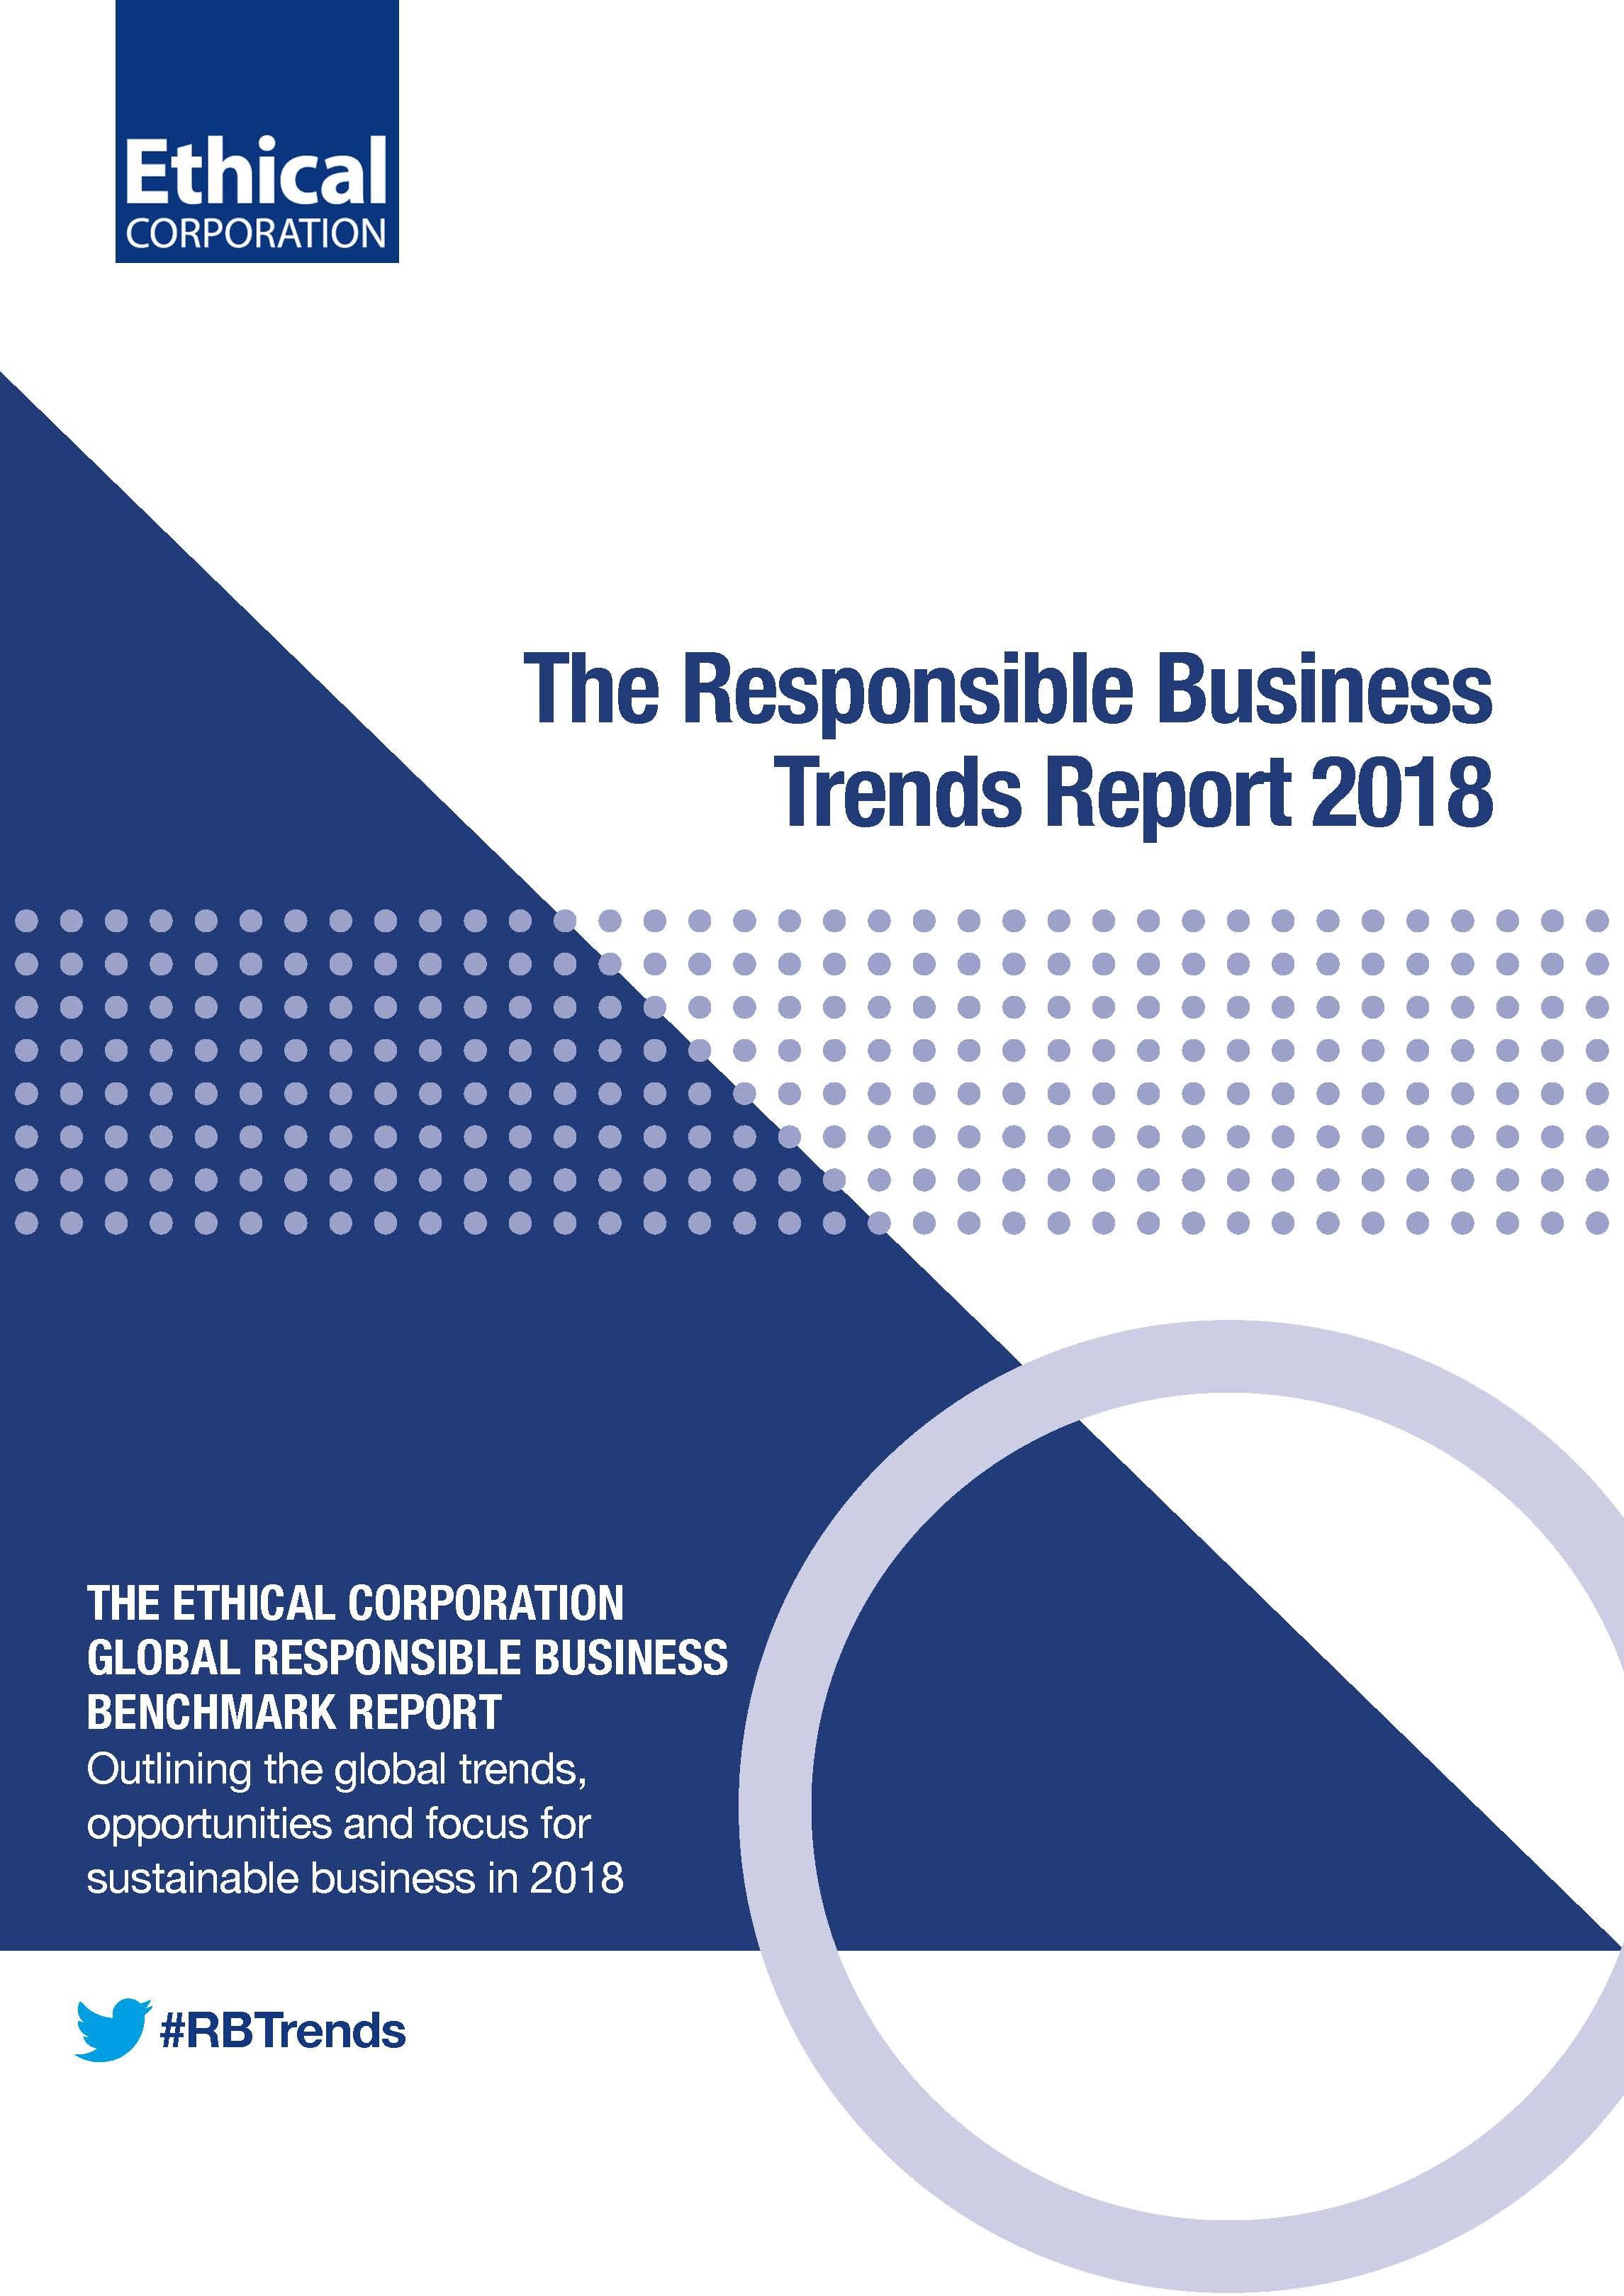 FREE Download: The Responsible Business Trends Report 2018